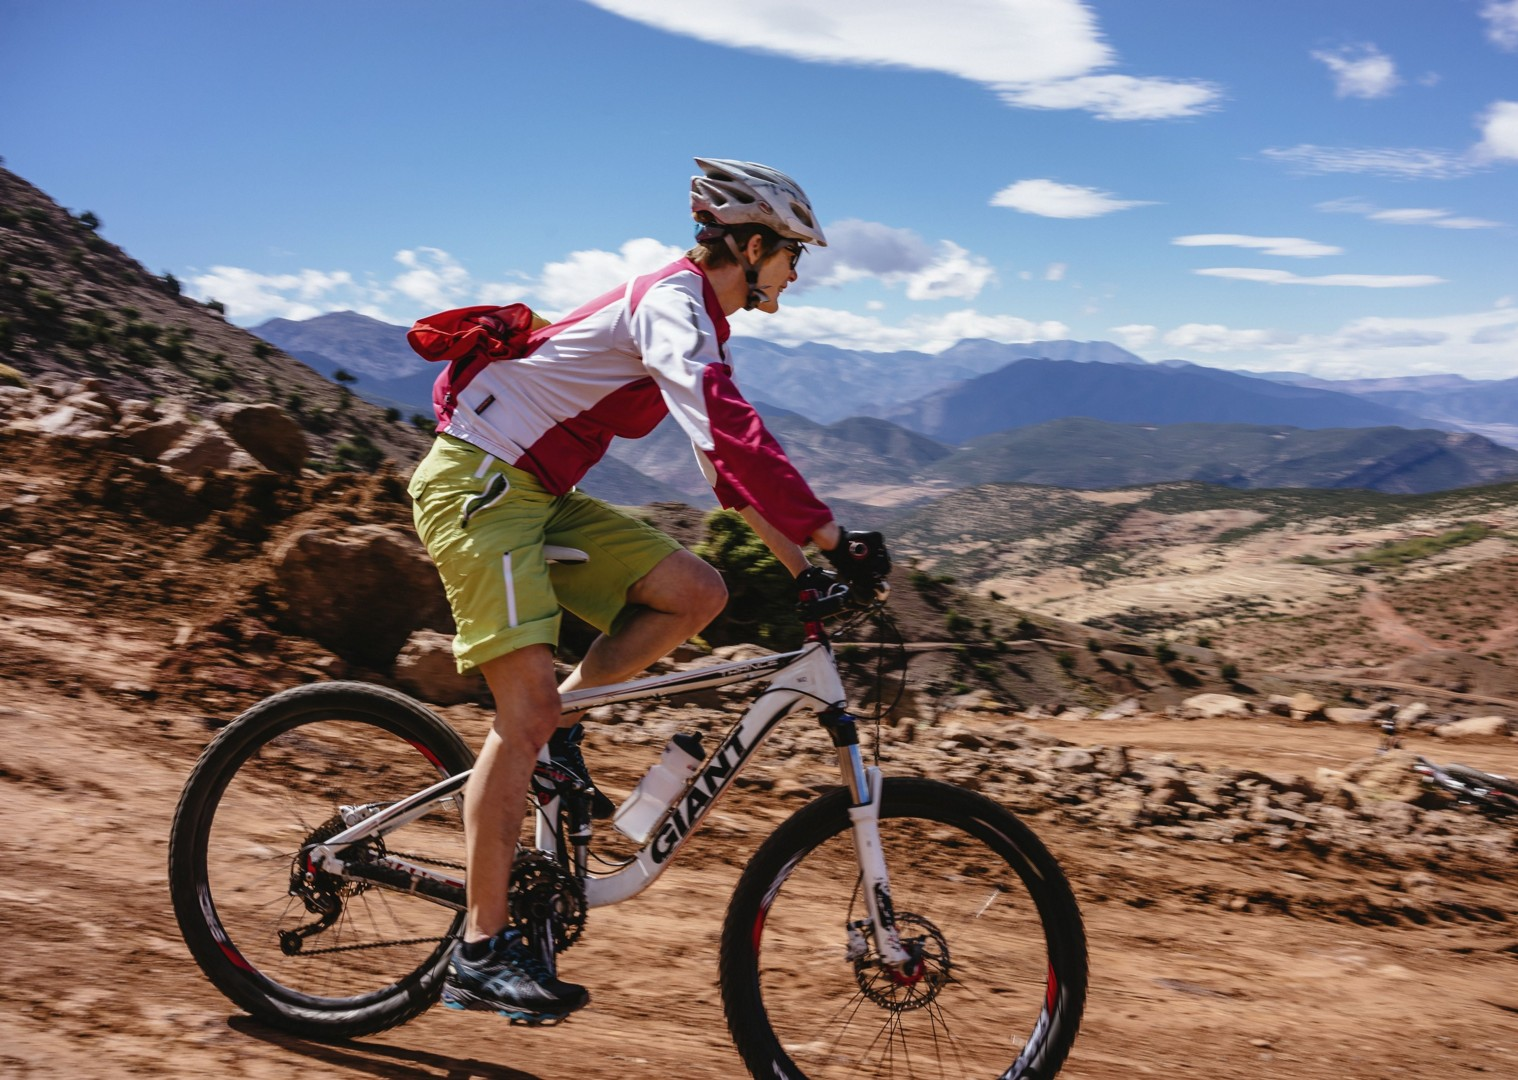 mountainbiking-mountain-morocco.jpg - Morocco - Atlas to Desert - Mountain Biking